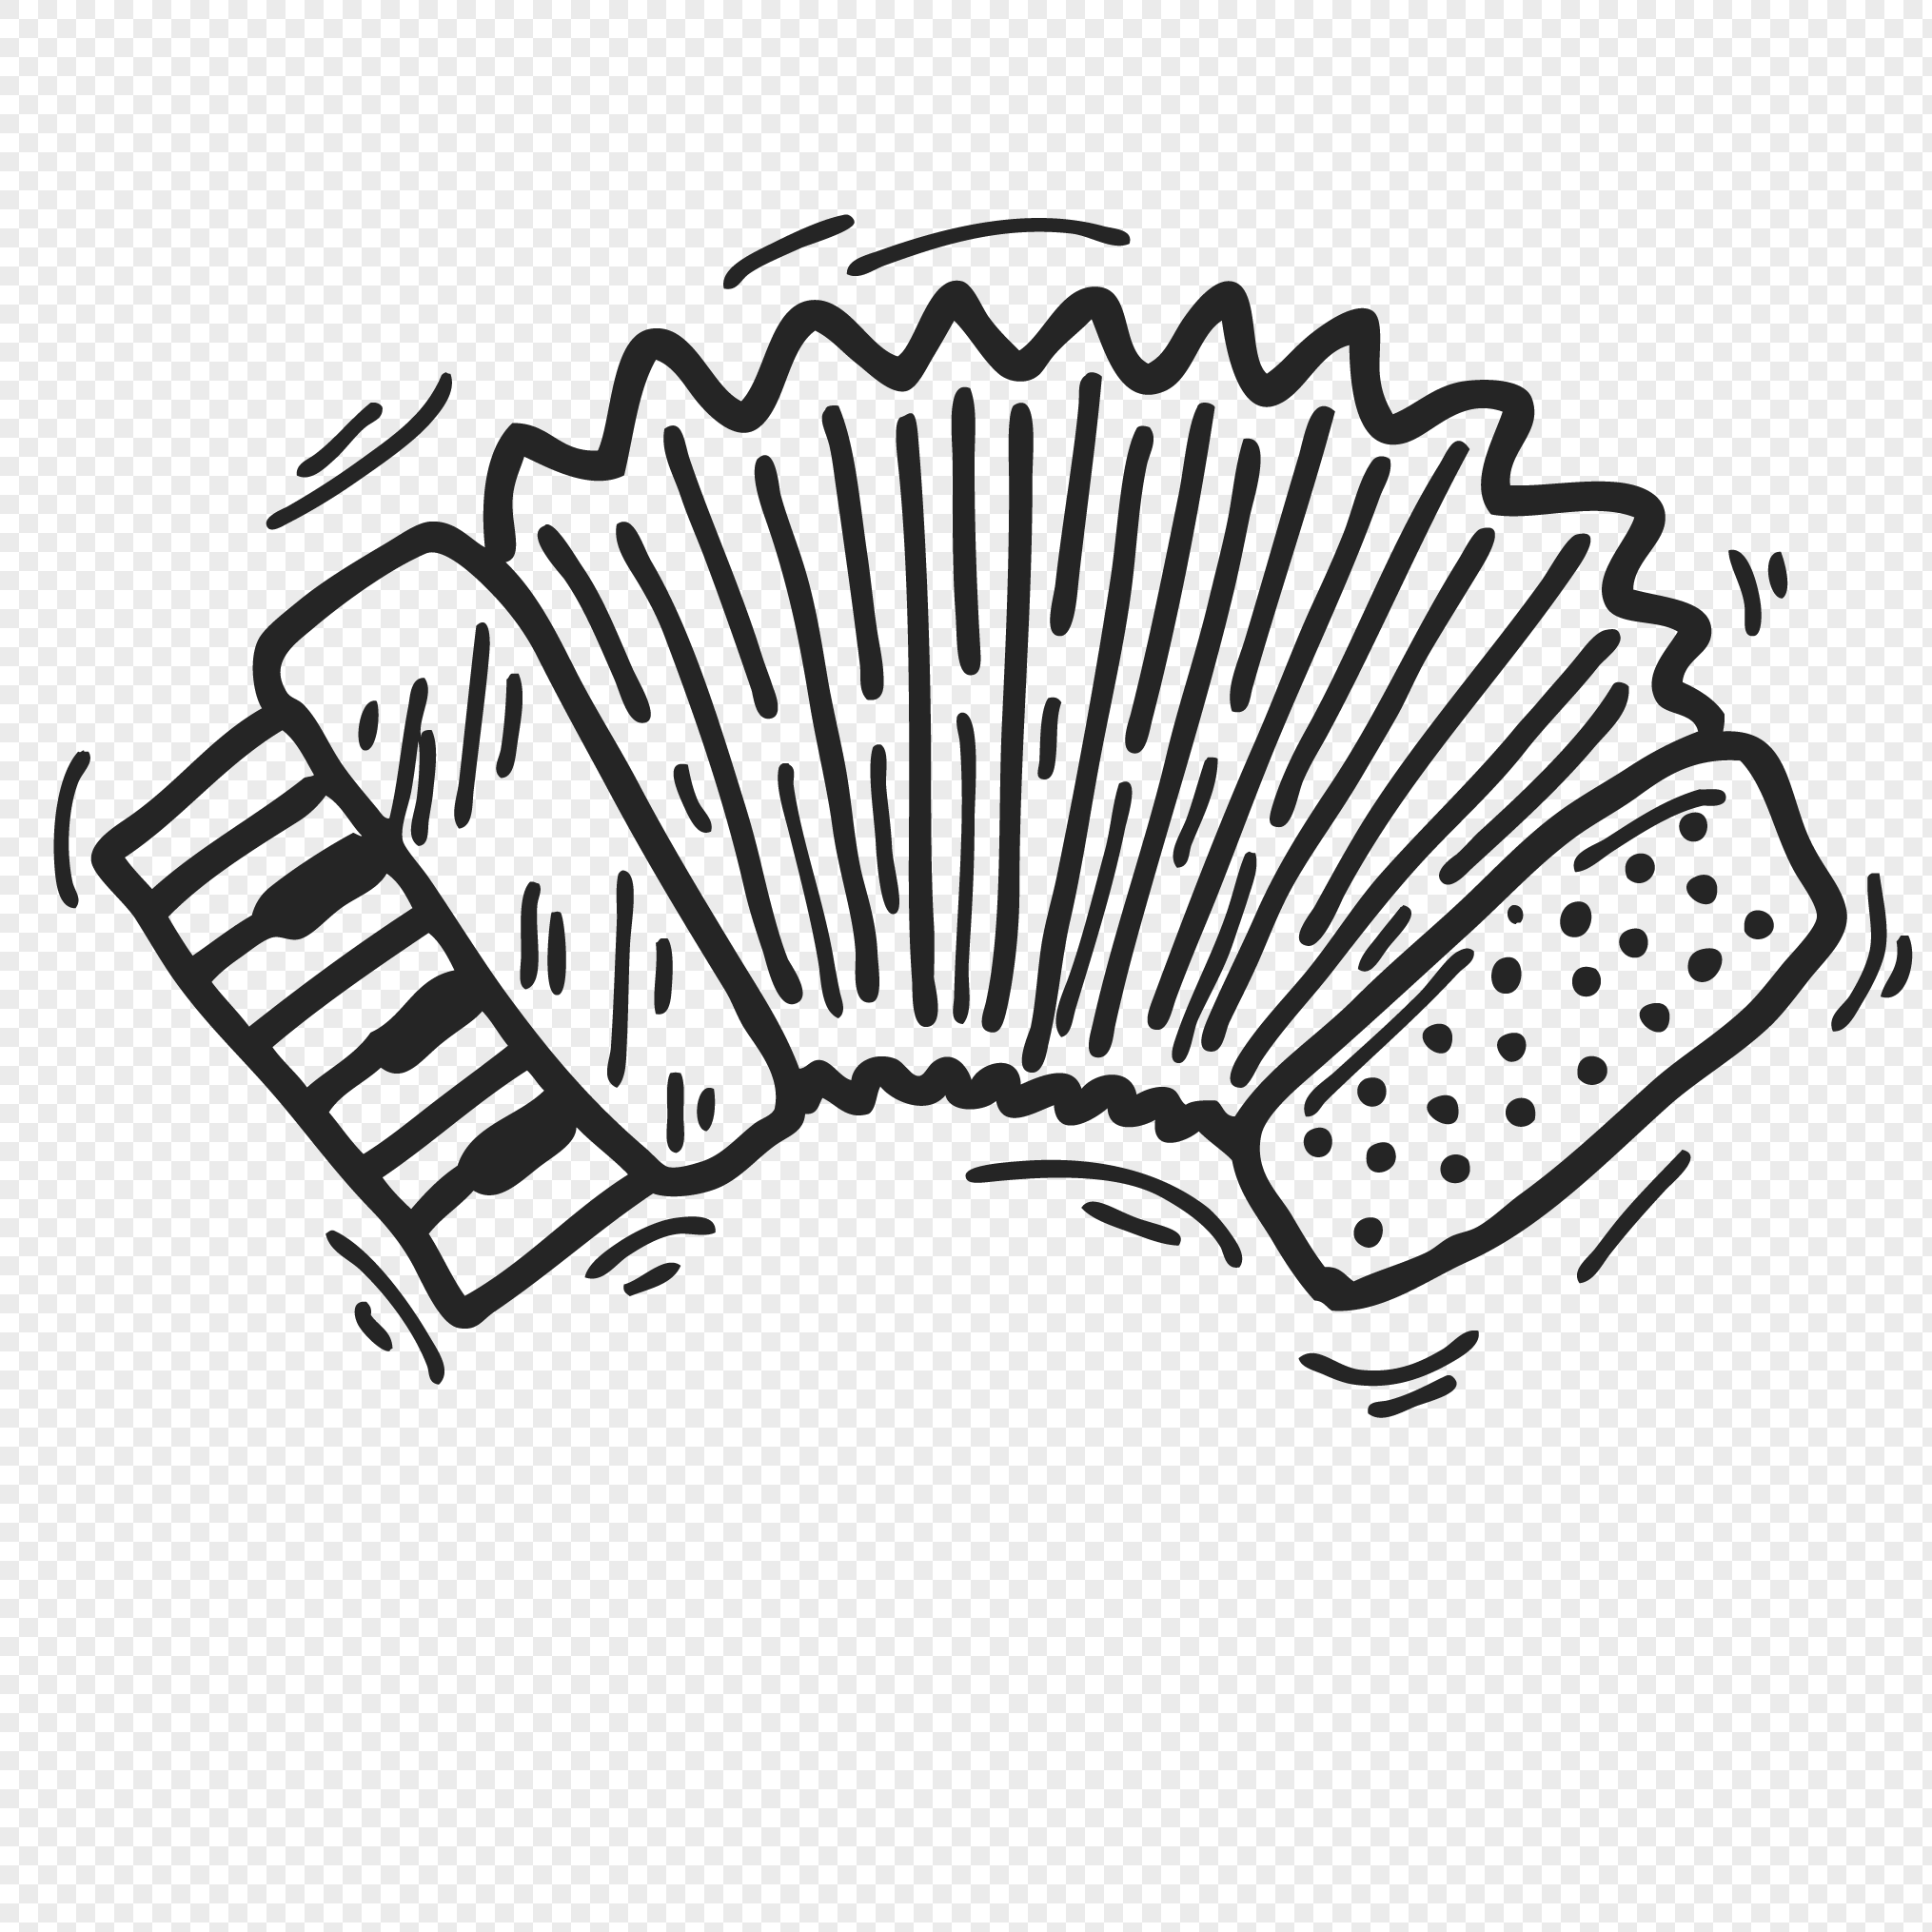 Hand Vector Free Download at GetDrawings com | Free for